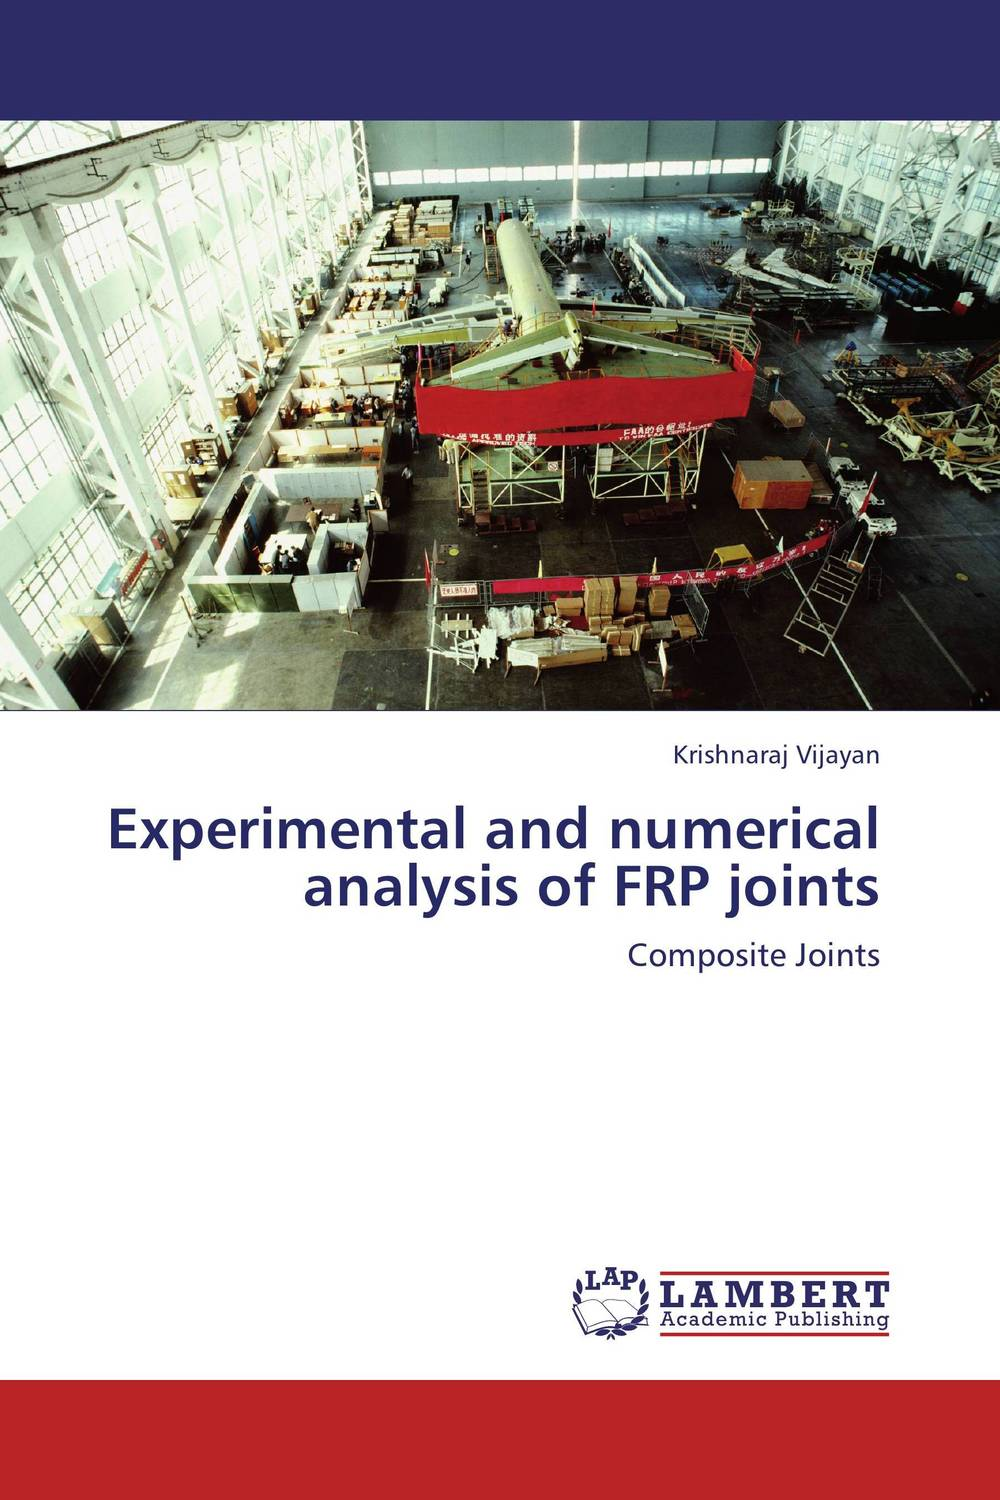 Experimental and numerical analysis of FRP joints bolted joints in laminated composites